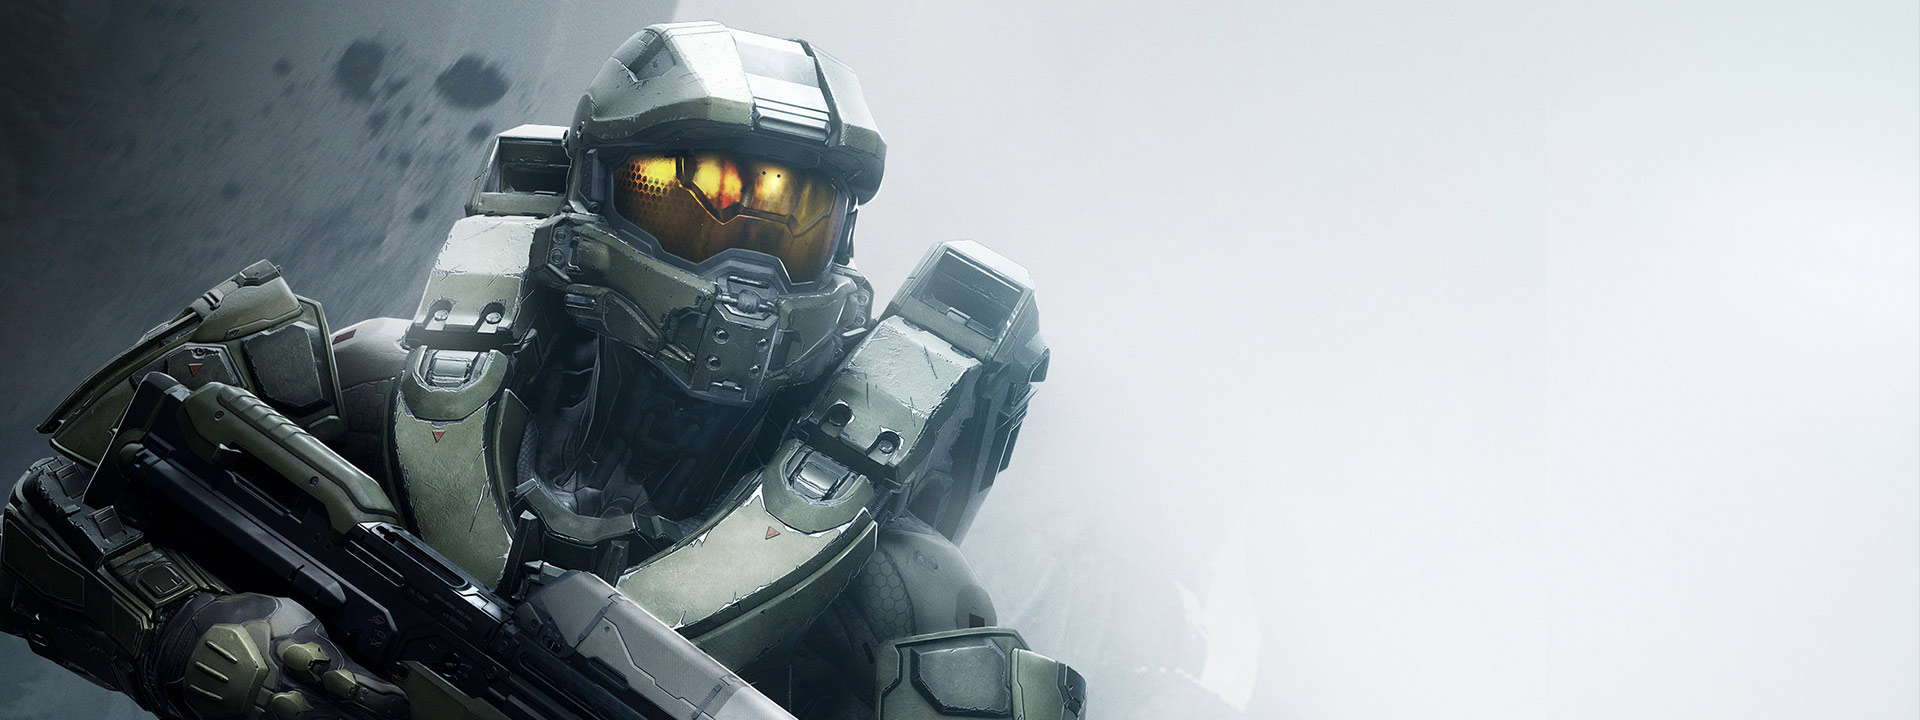 Front view of master chief Halo spartan